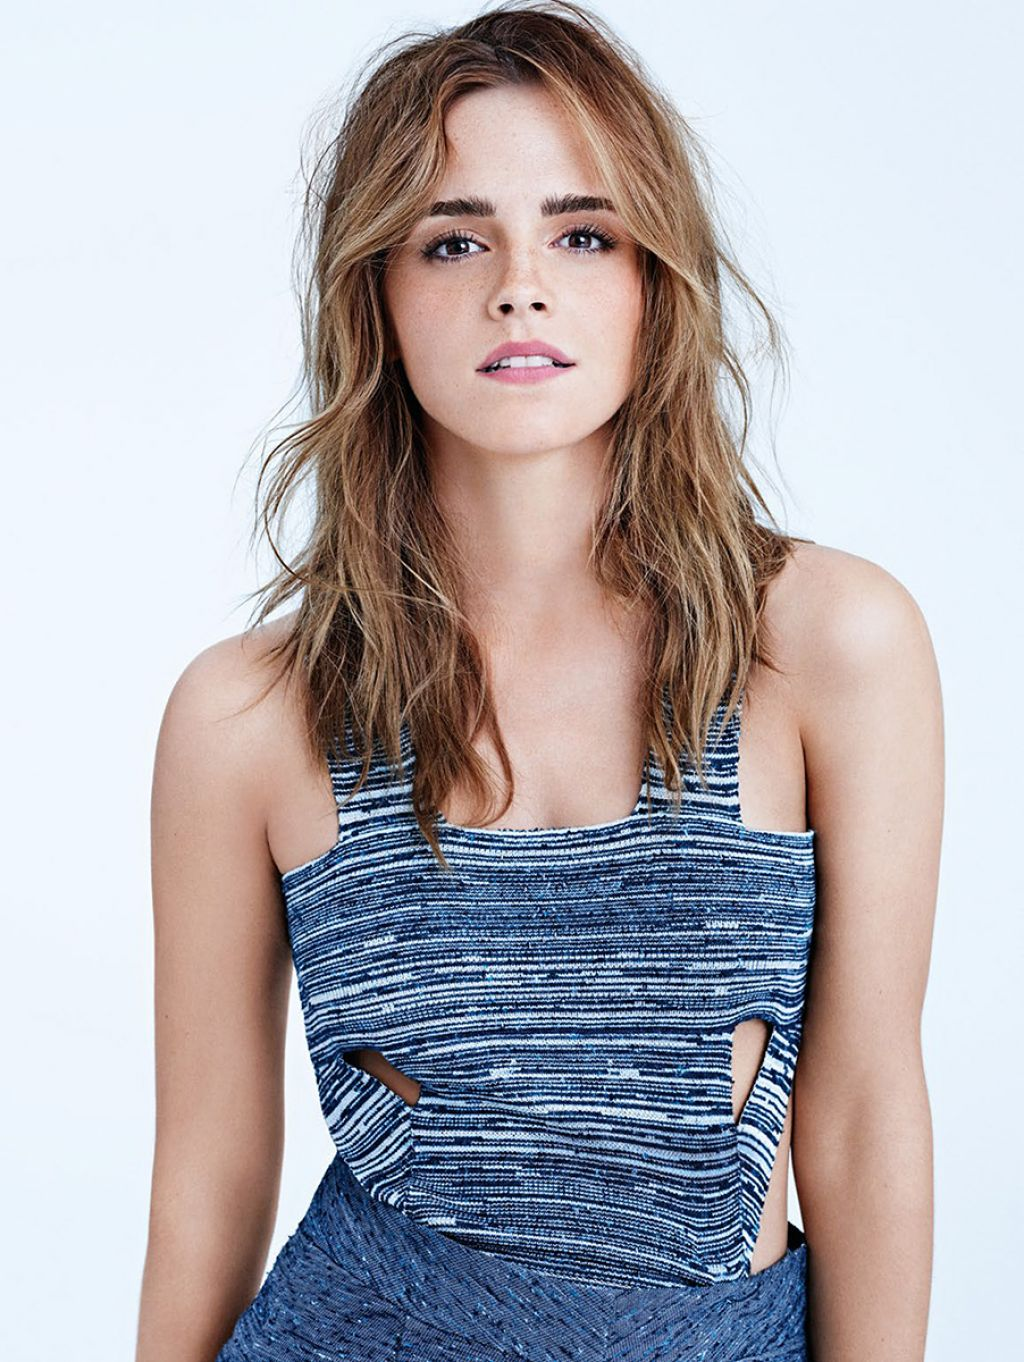 emma-watson-photoshoot-for-elle-magazine-uk-december-2014_10 Emma Watson